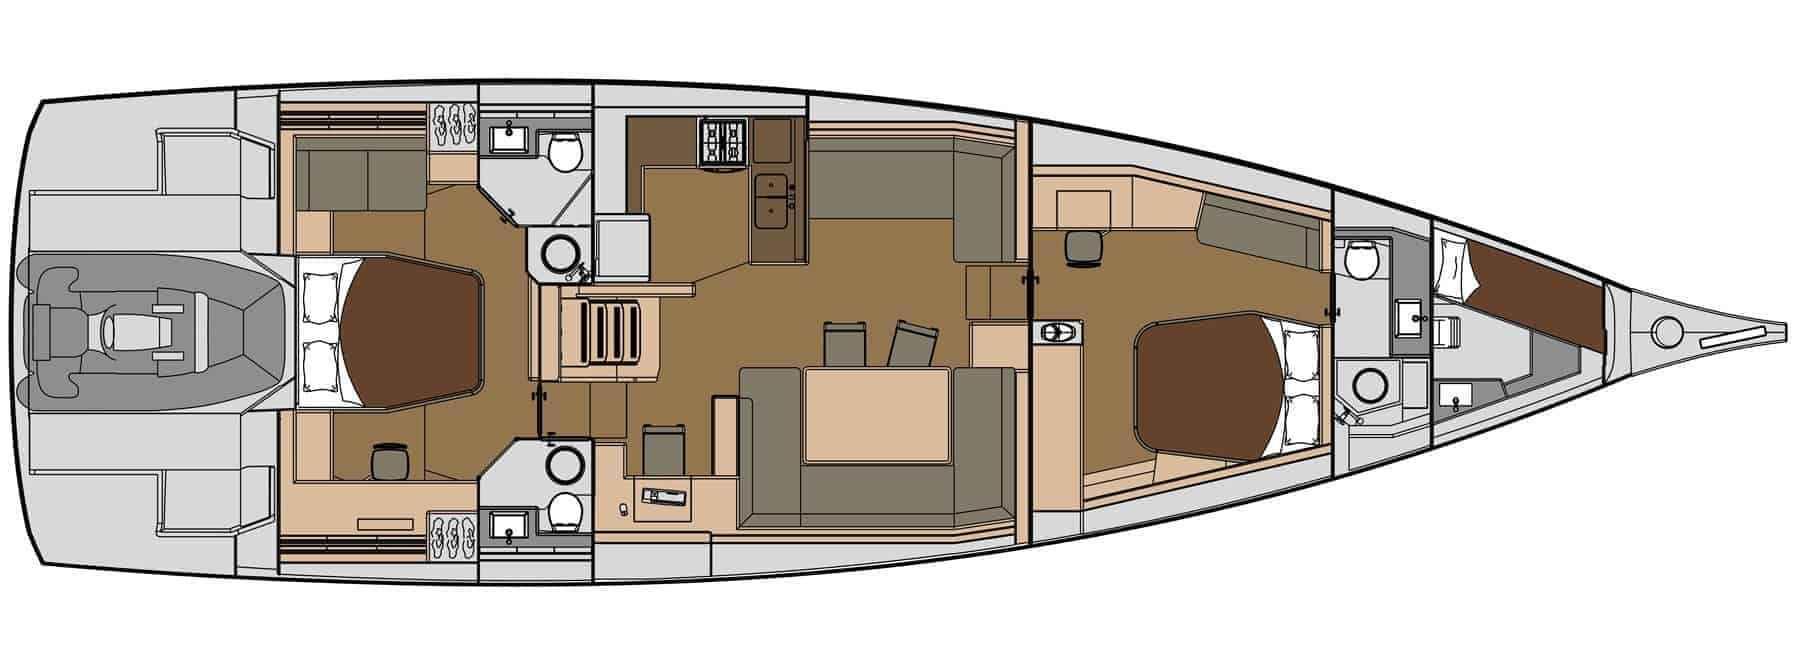 3 cabin layout plan of the Dufour Exclusive 63